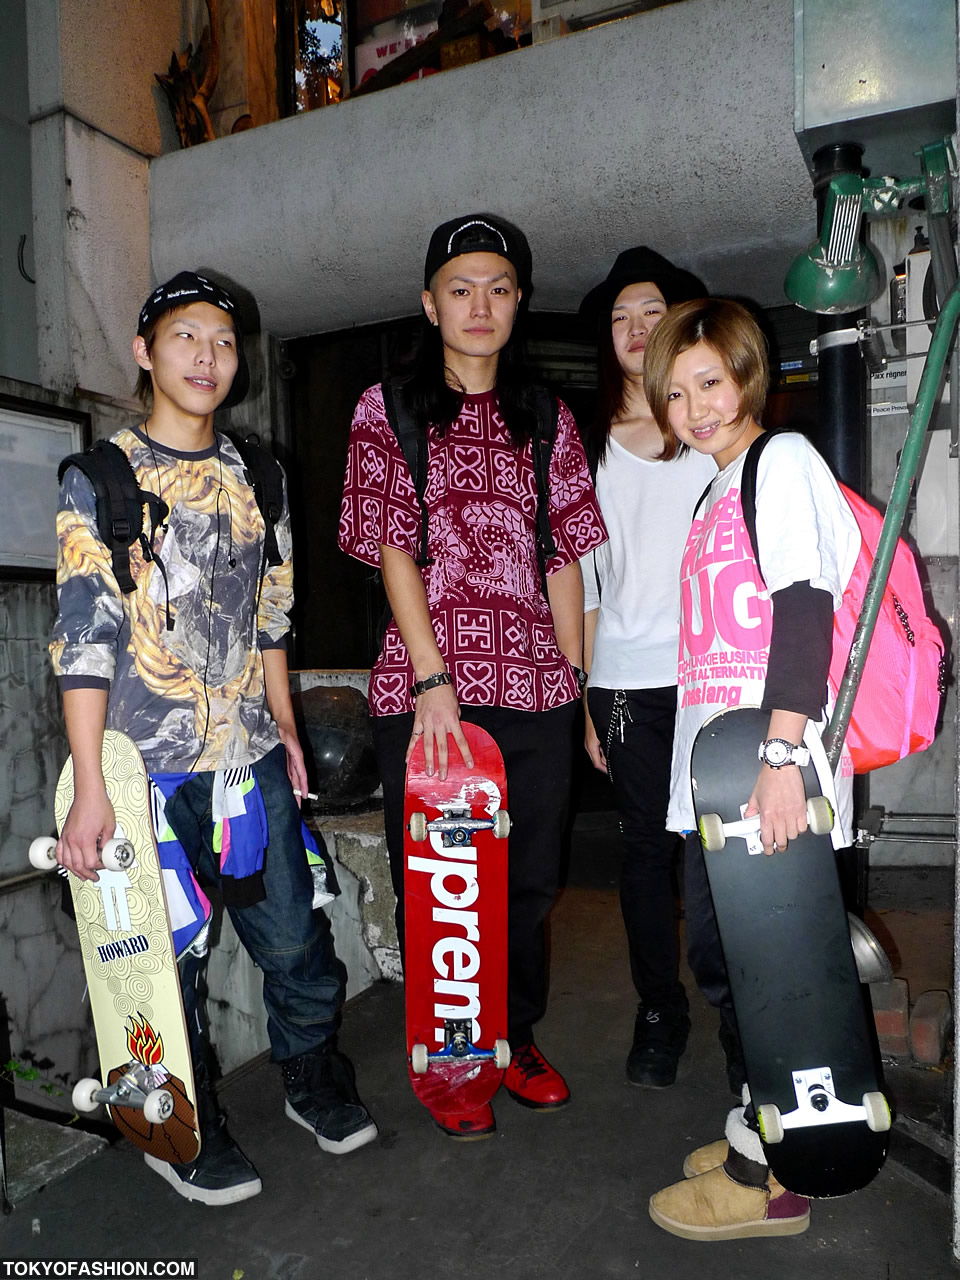 Image result for skater in supreme